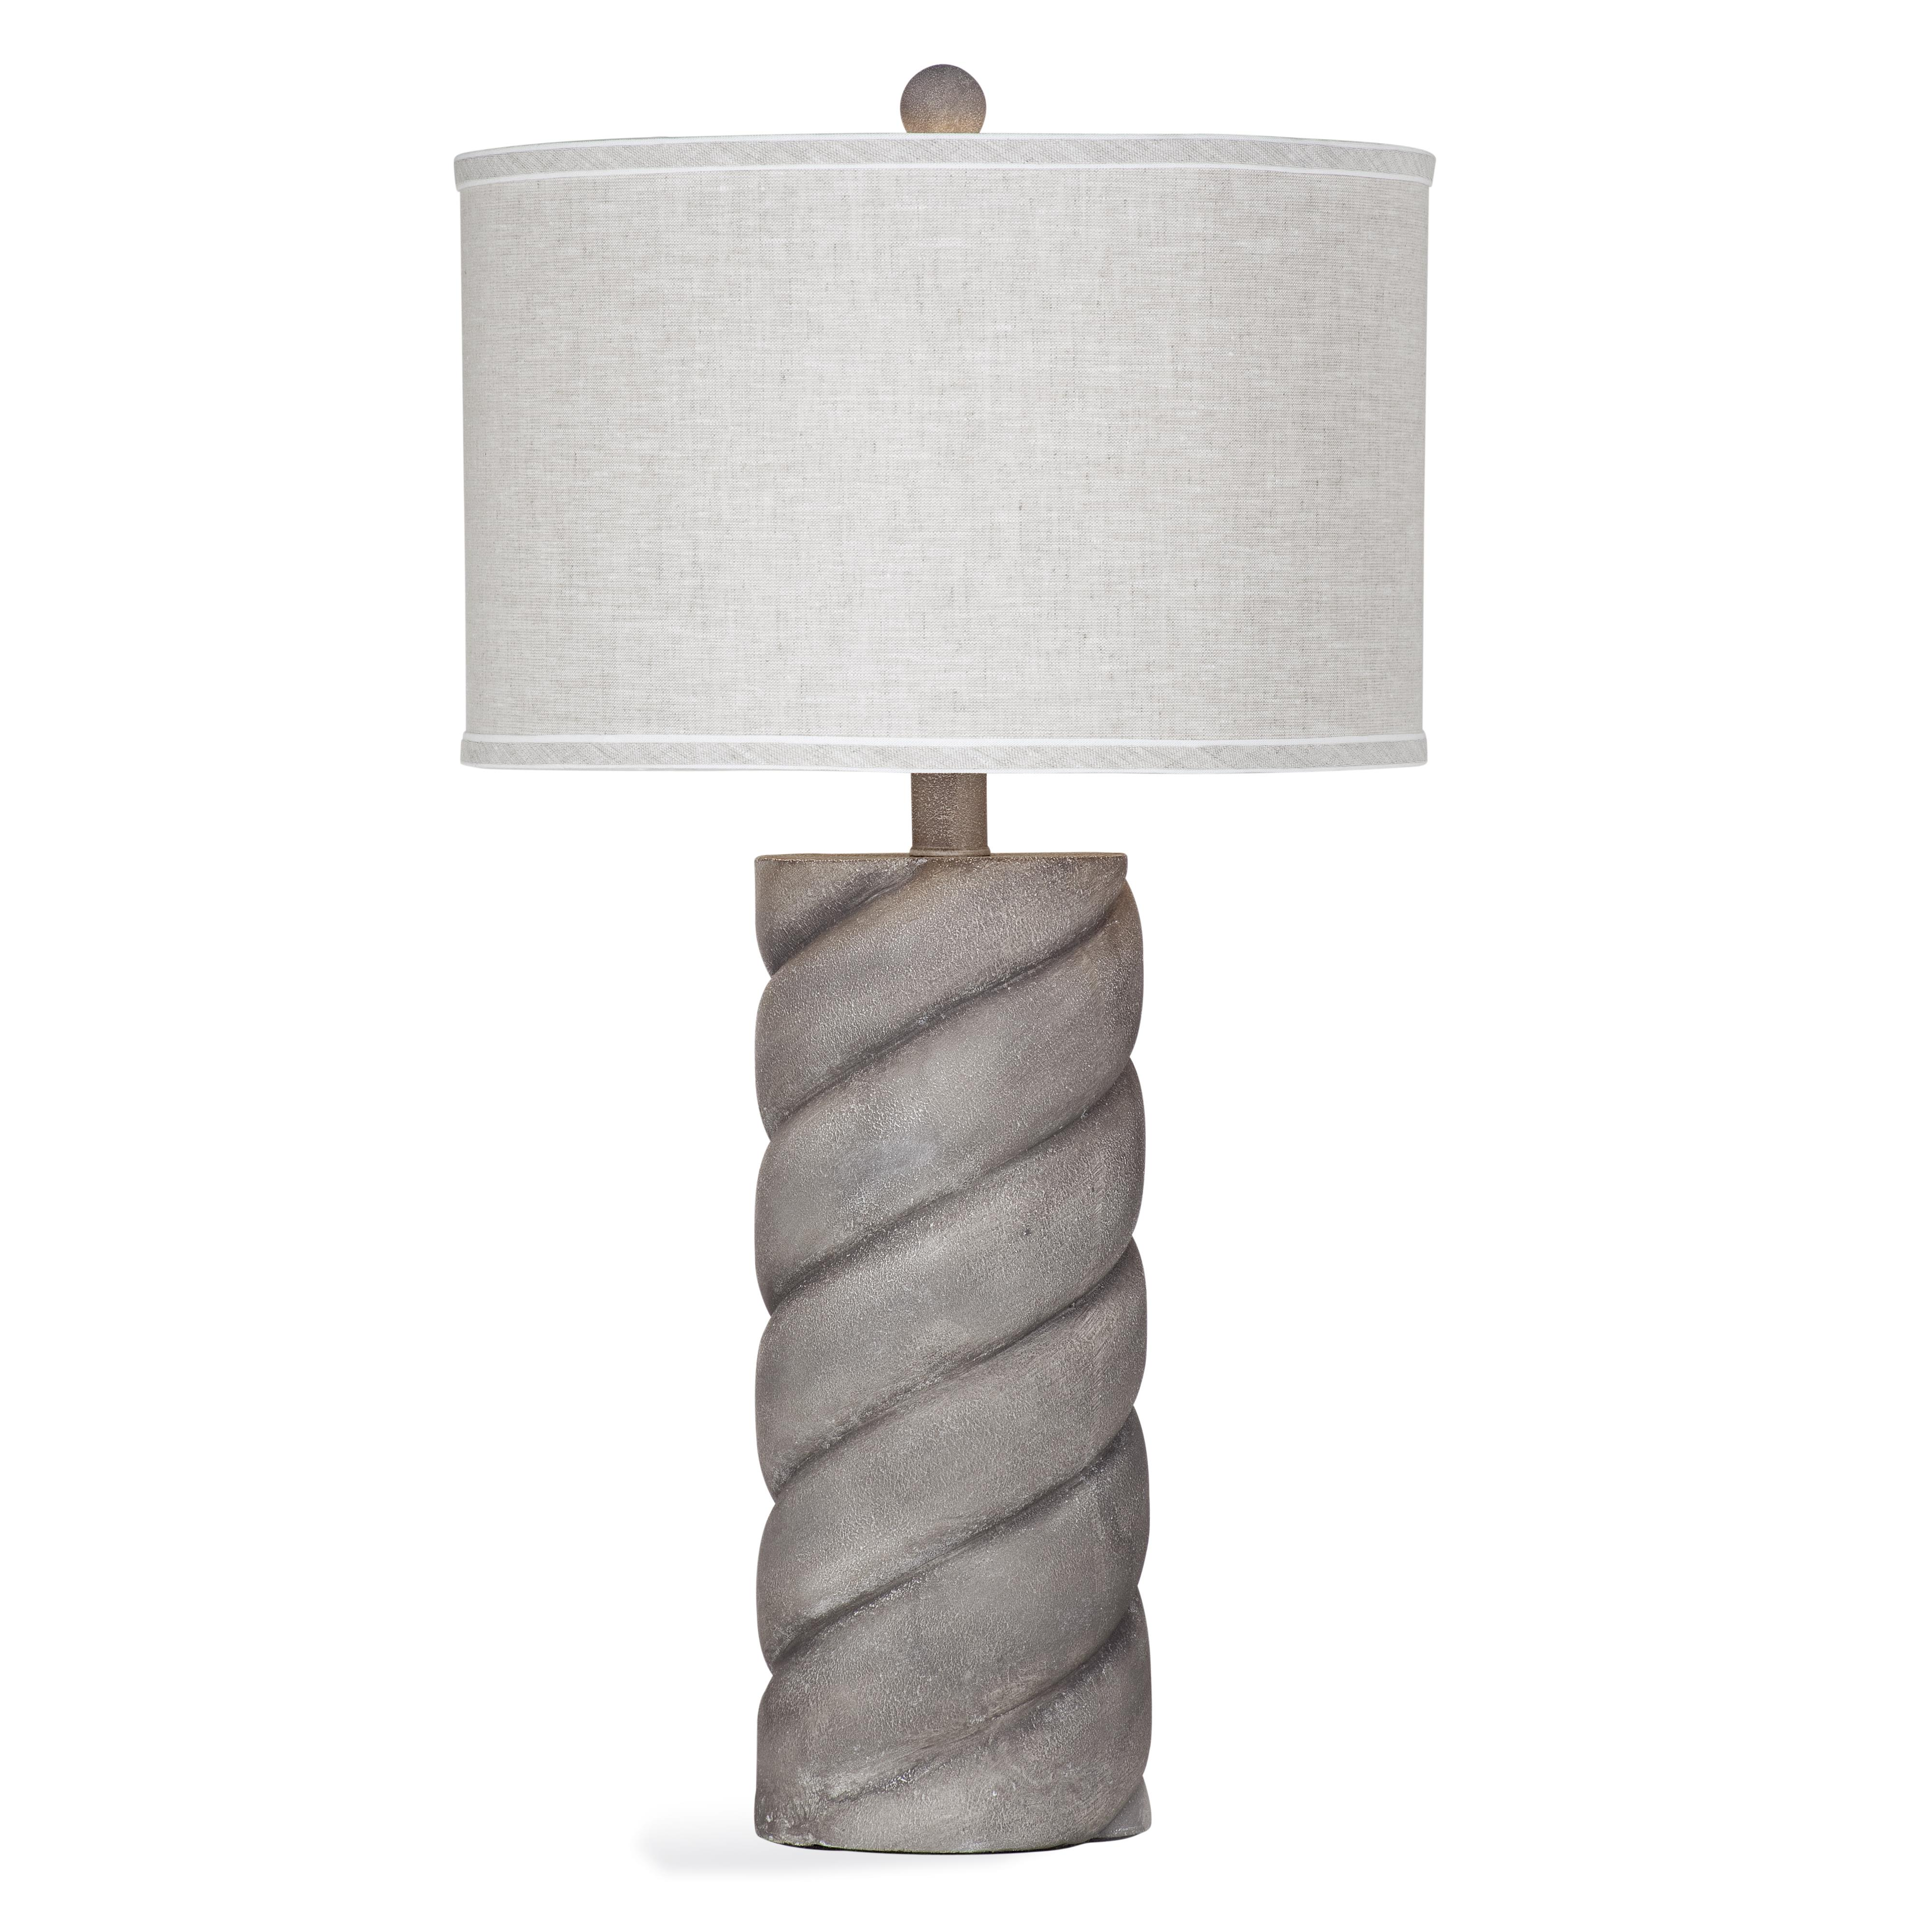 Belgian Luxe Gillia Table Lamp by Bassett Mirror at Alison Craig Home Furnishings